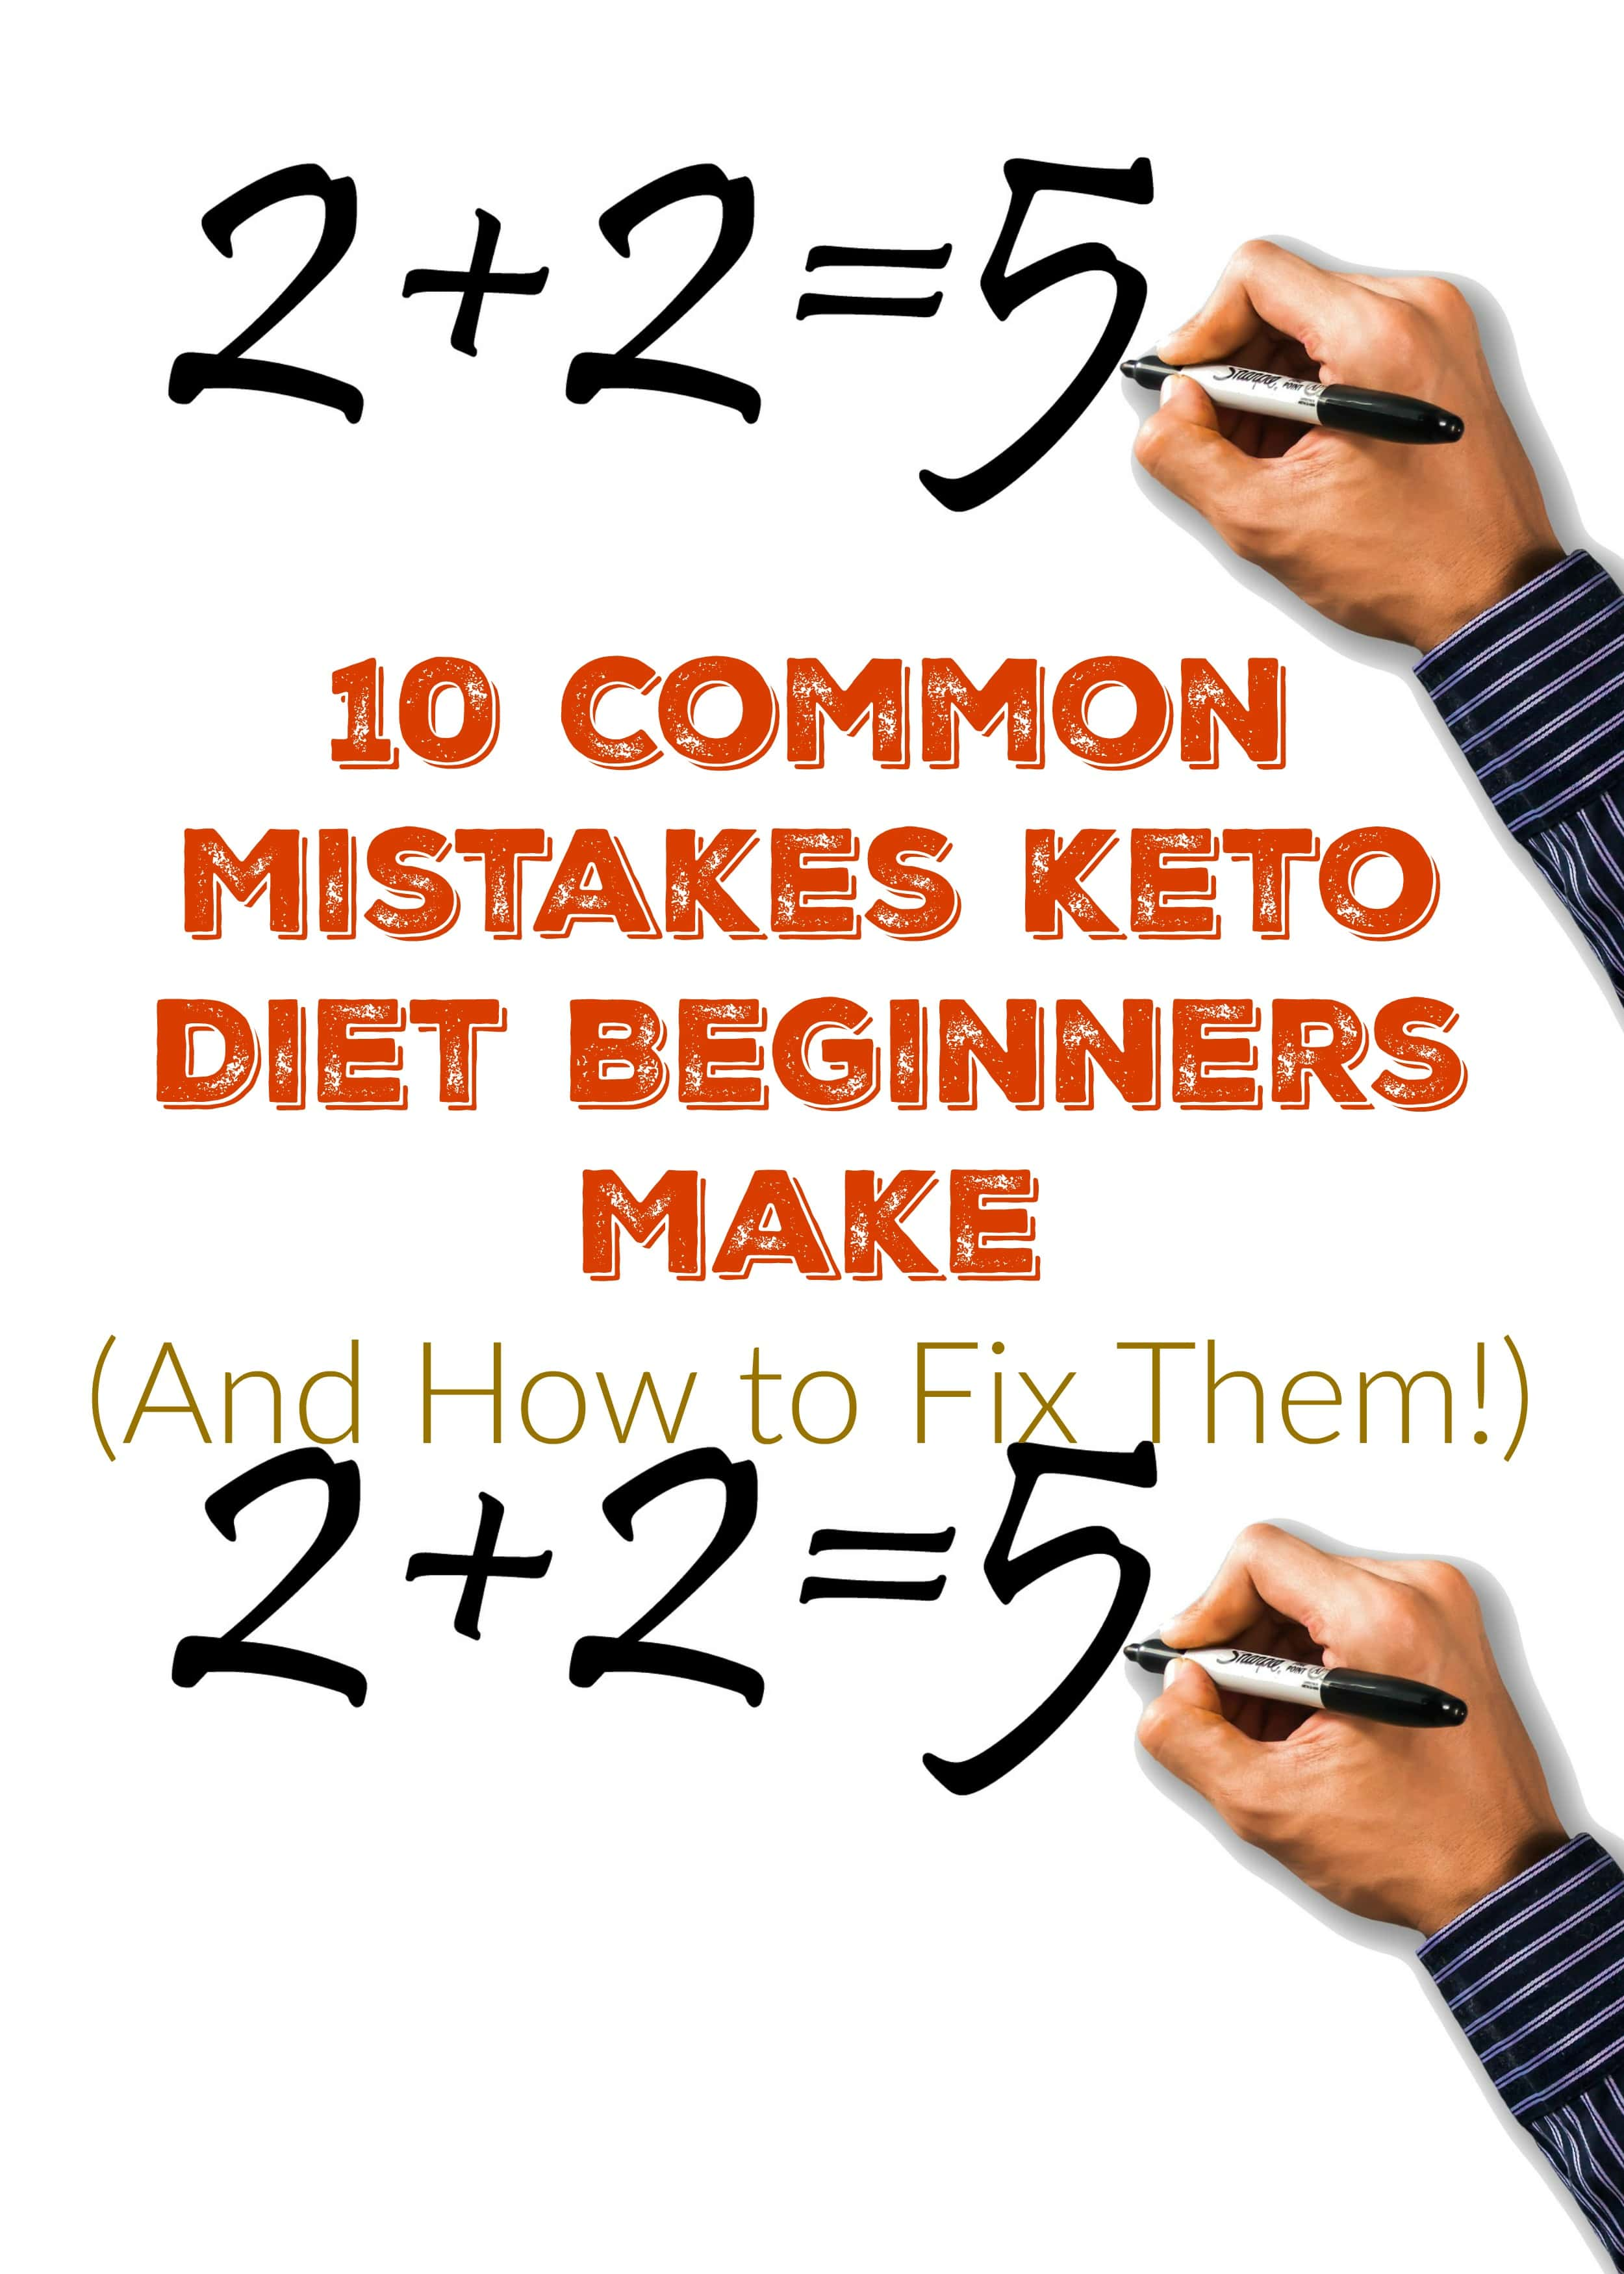 What Common Mistakes do Beginners Make on the Ketogenic Diet?